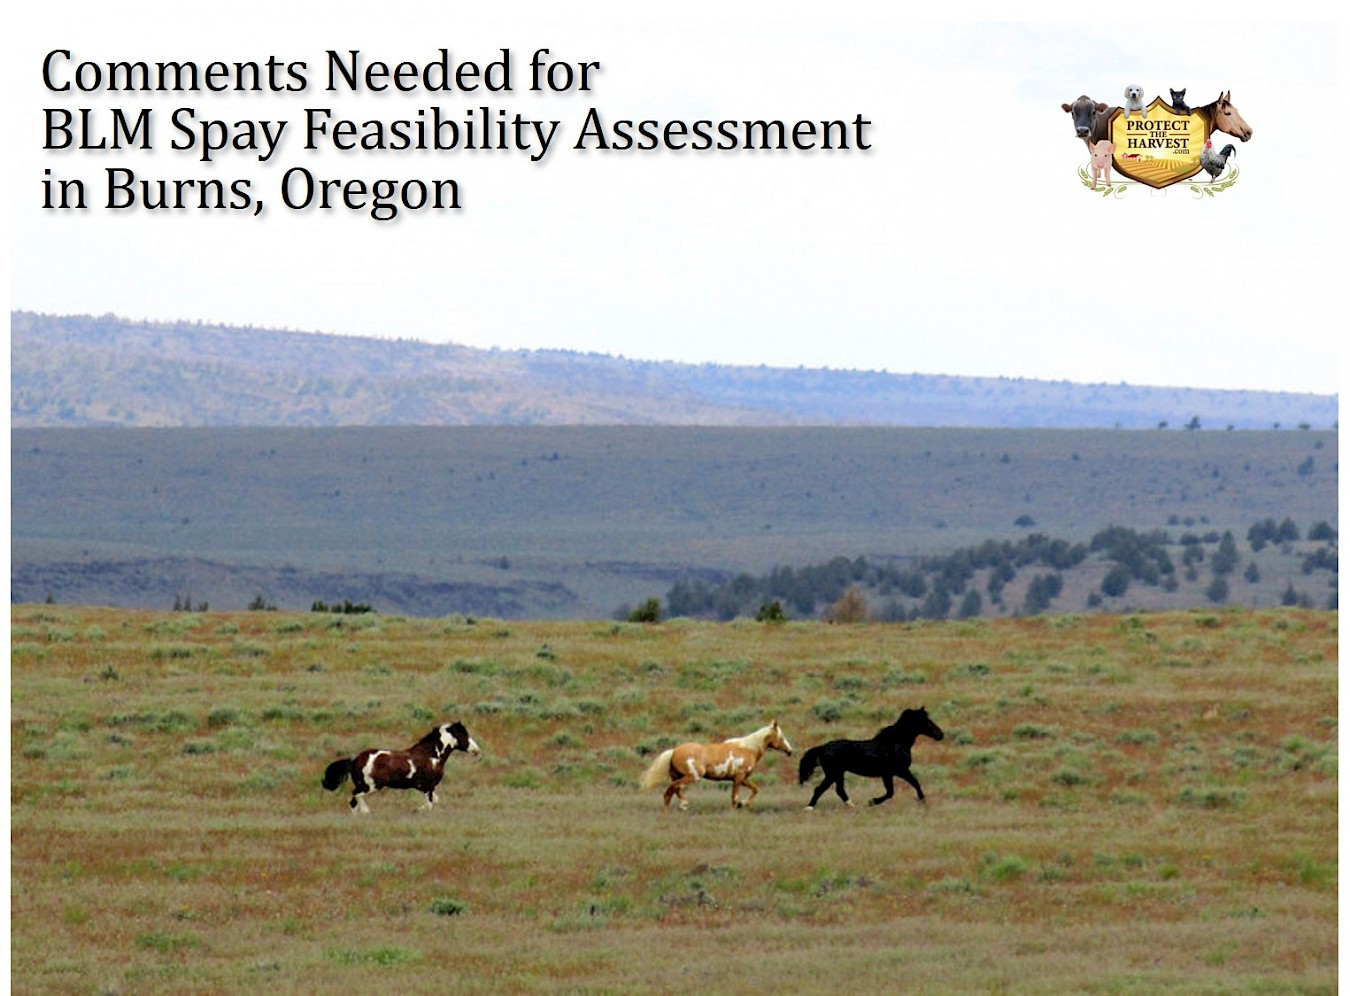 BLM Opens Comment Period for New Spay Feasibility Study